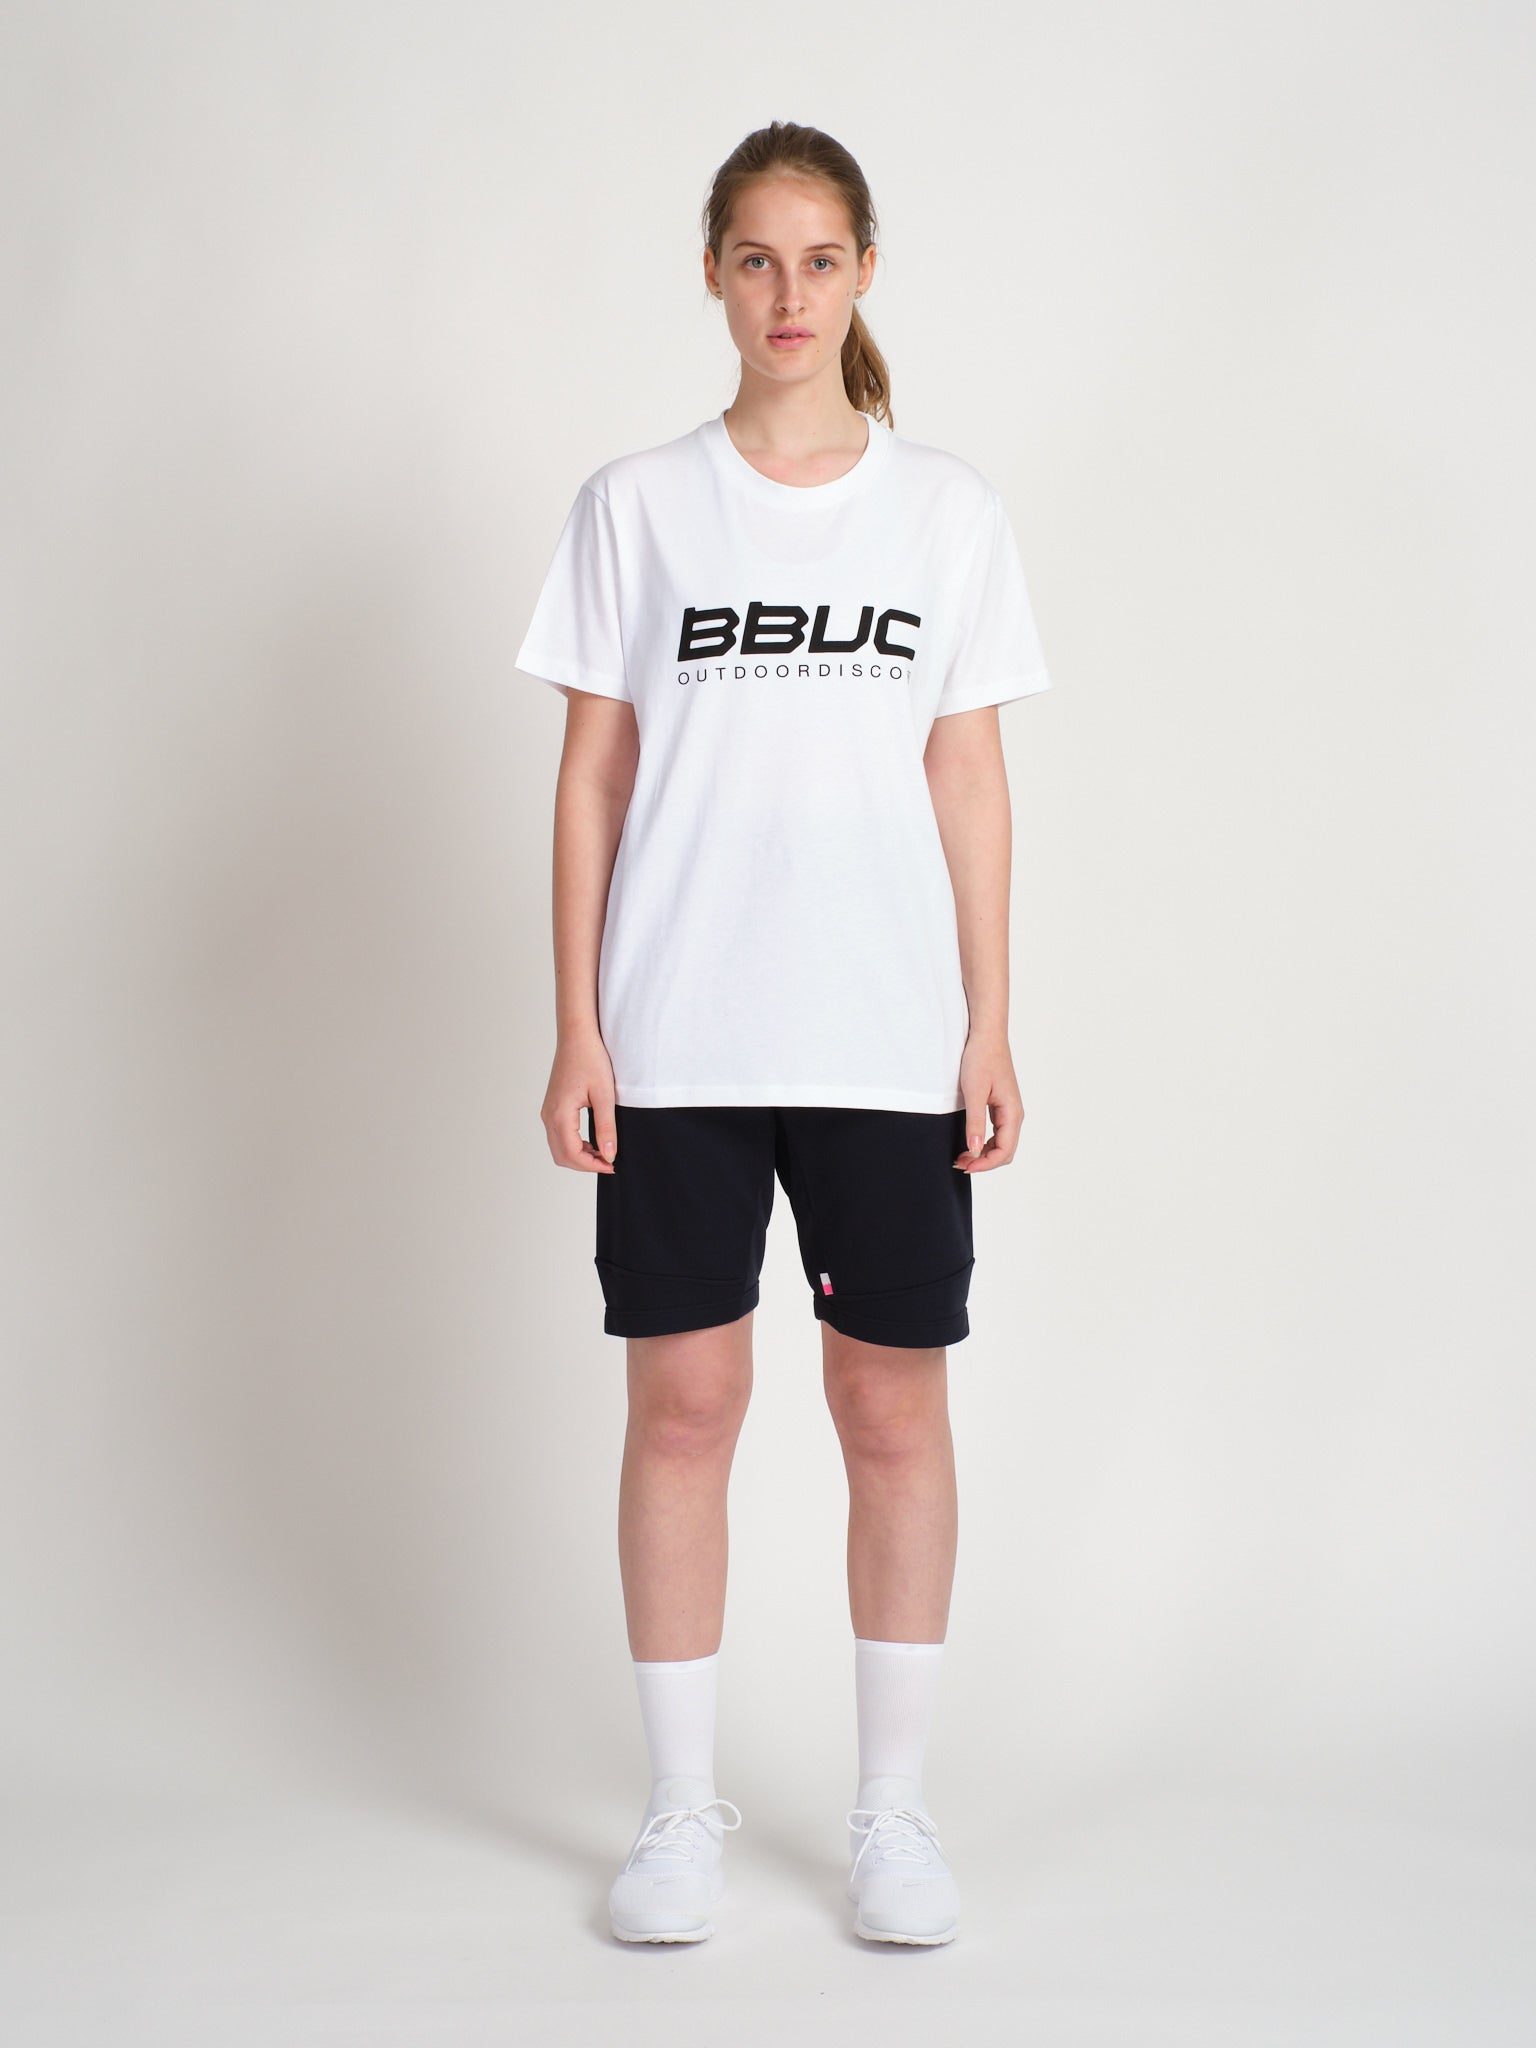 BBUC T-Shirt White Women